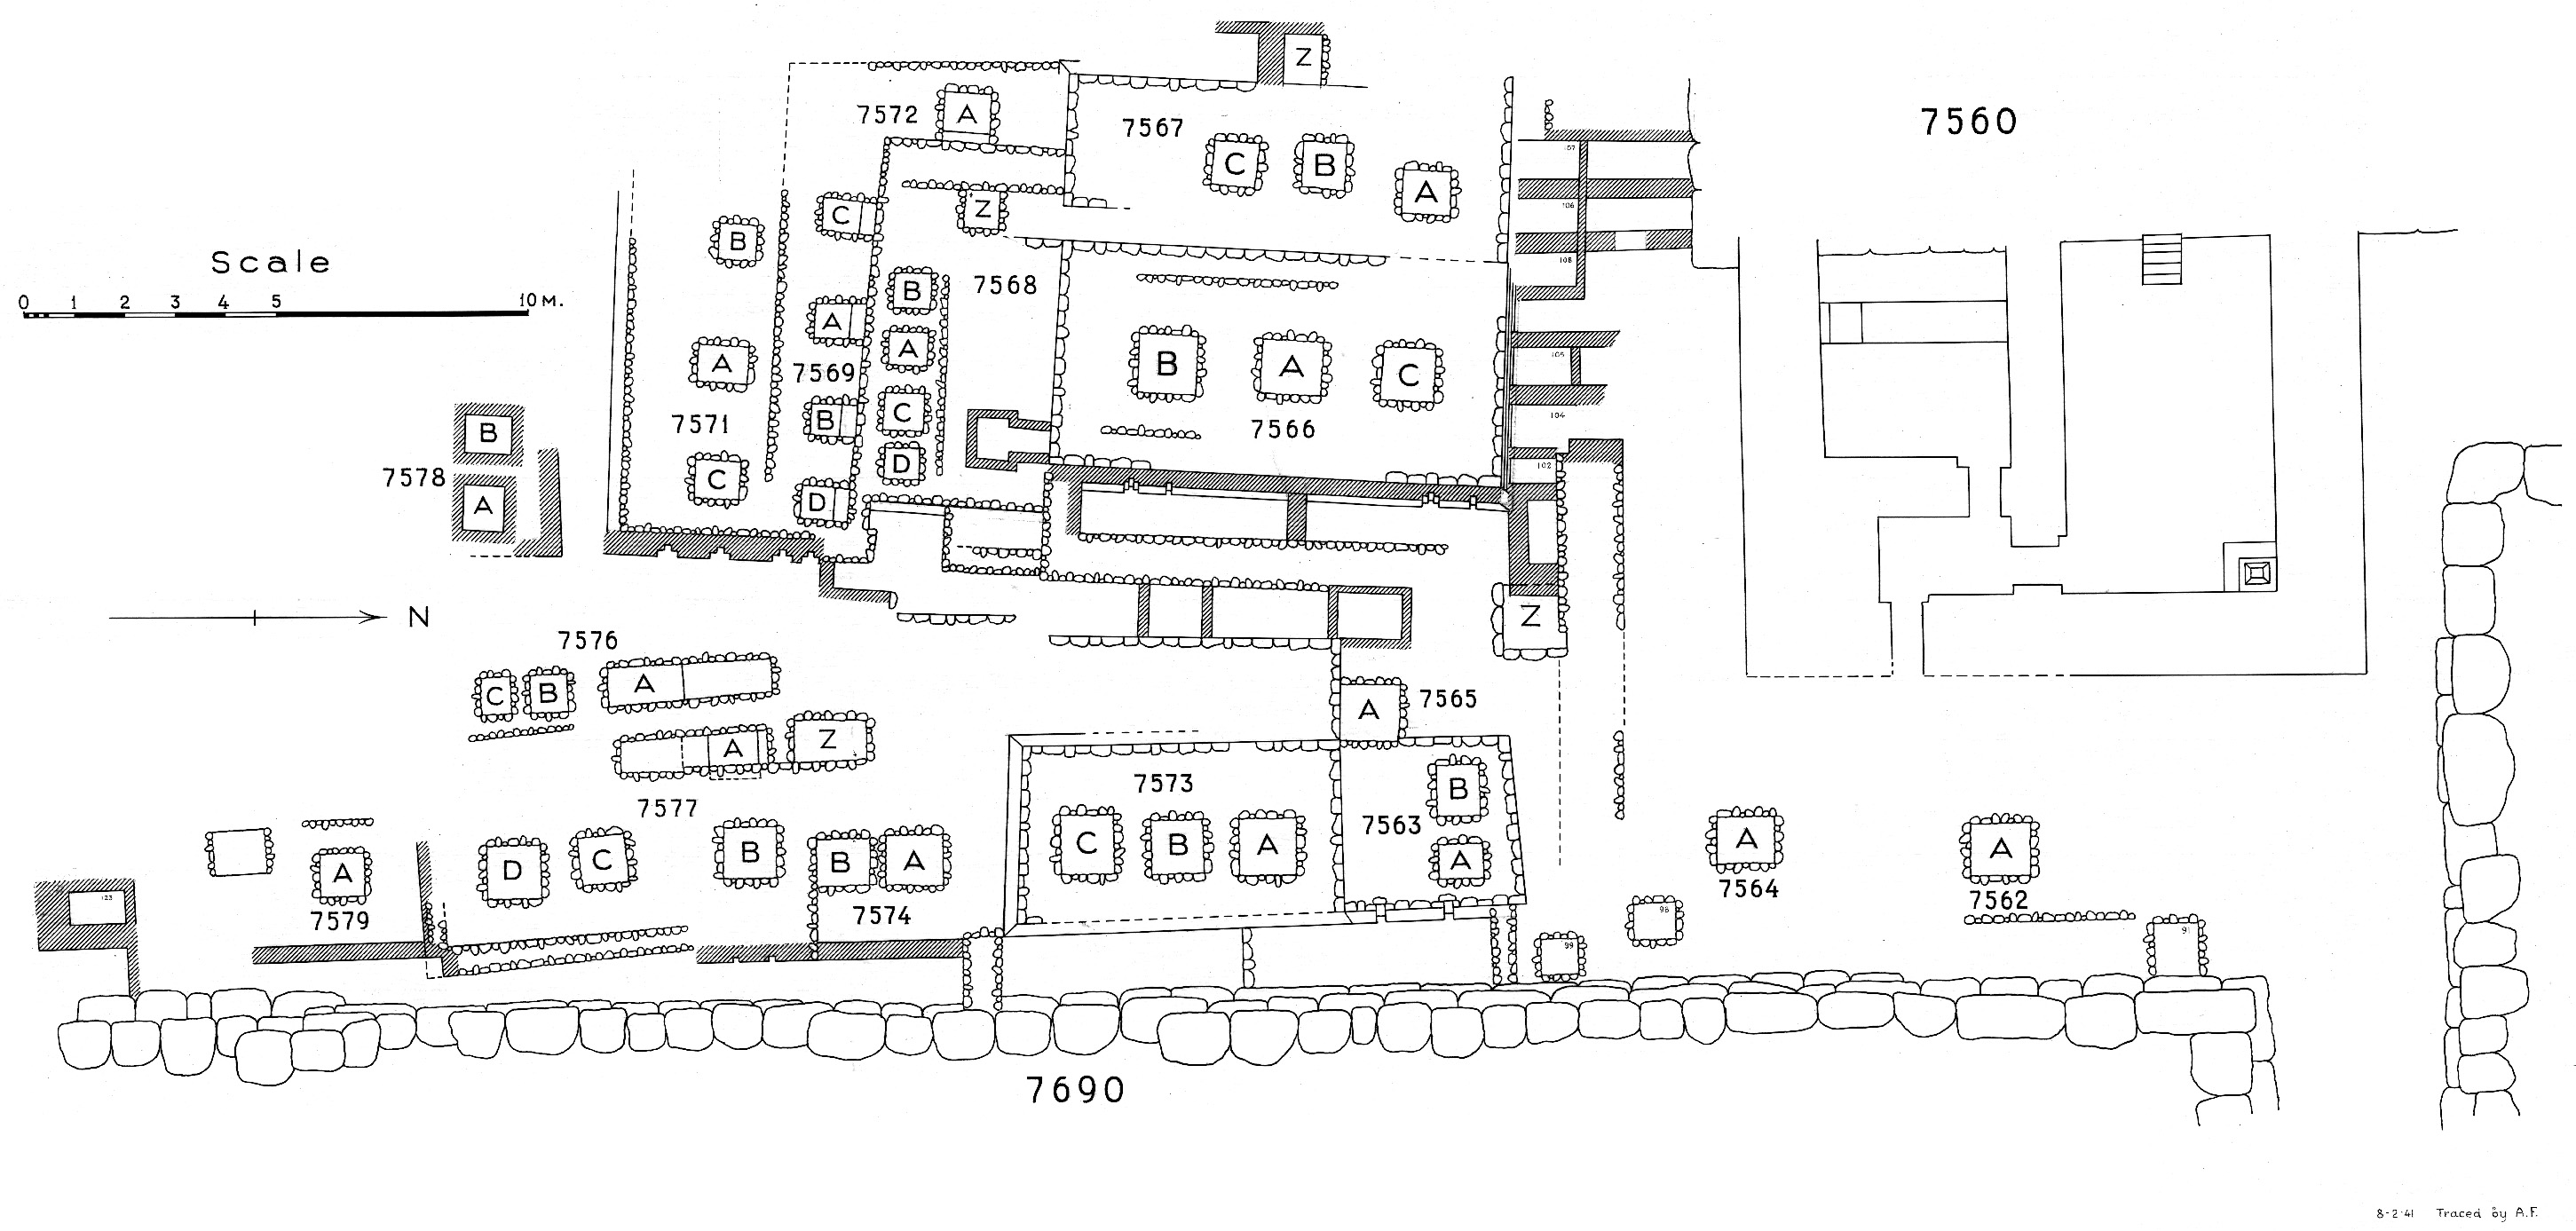 Maps and plans: Plan of cemetery G 7000: G 7500s